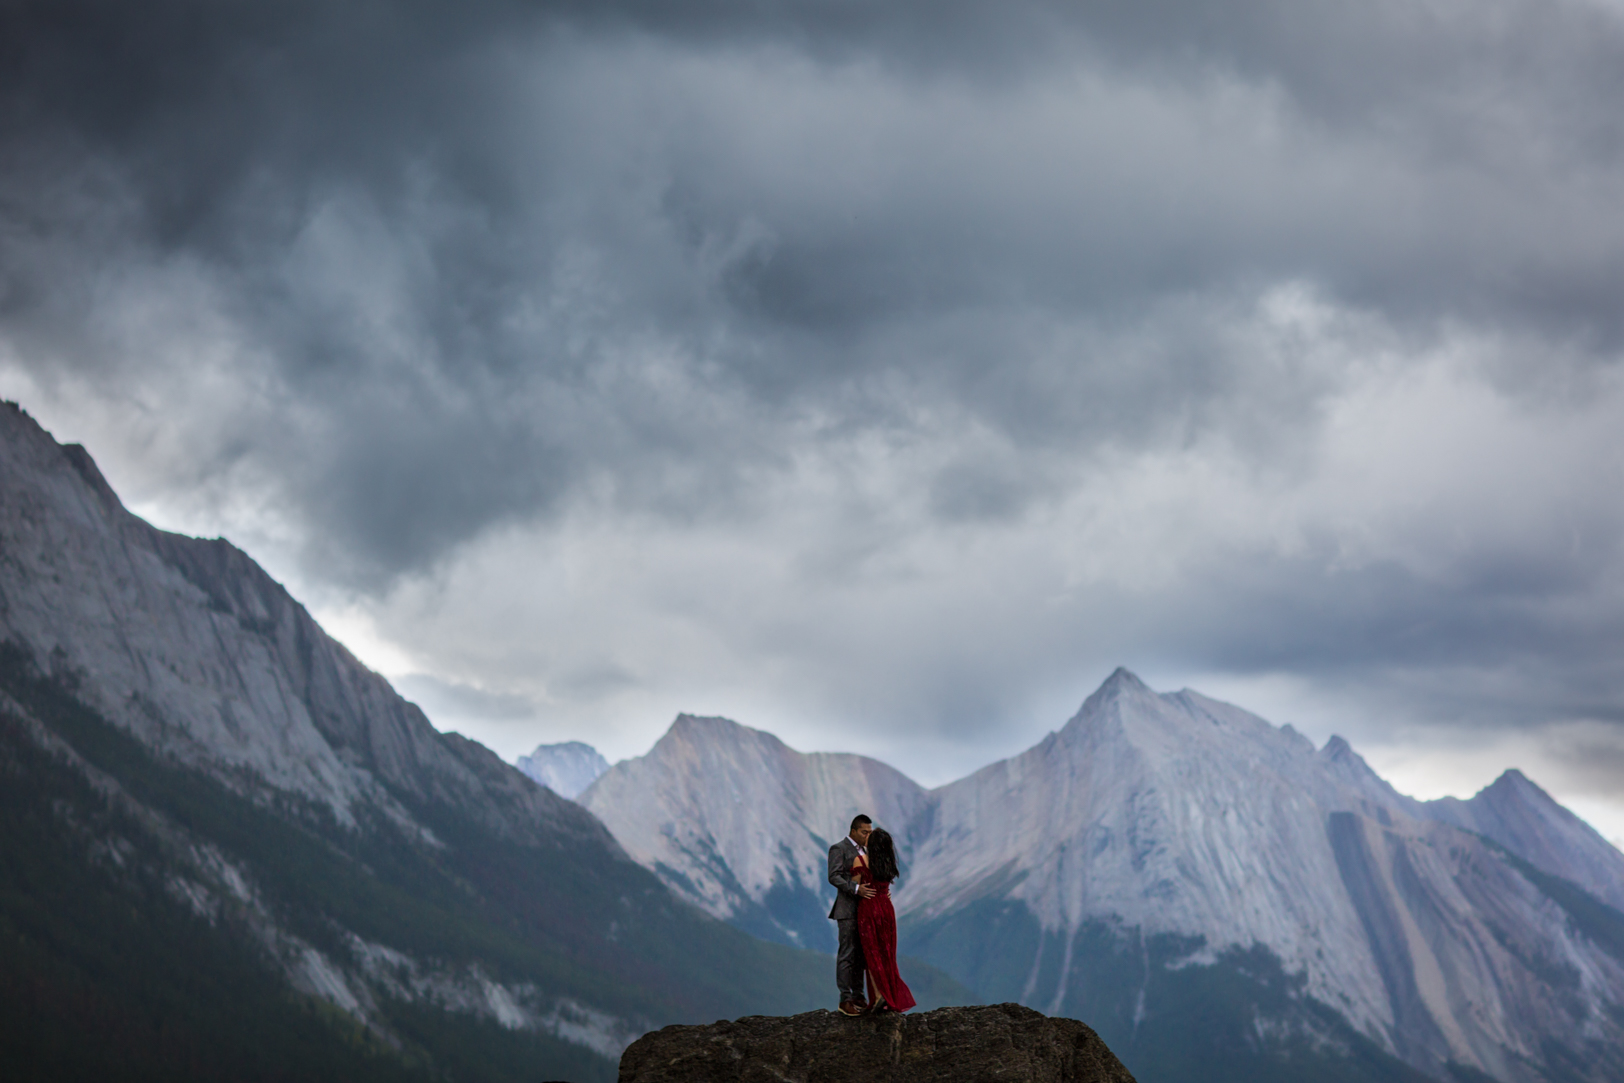 Dramatic Engagement Photos in the Mountains - Jasper Engagement Adventure Session